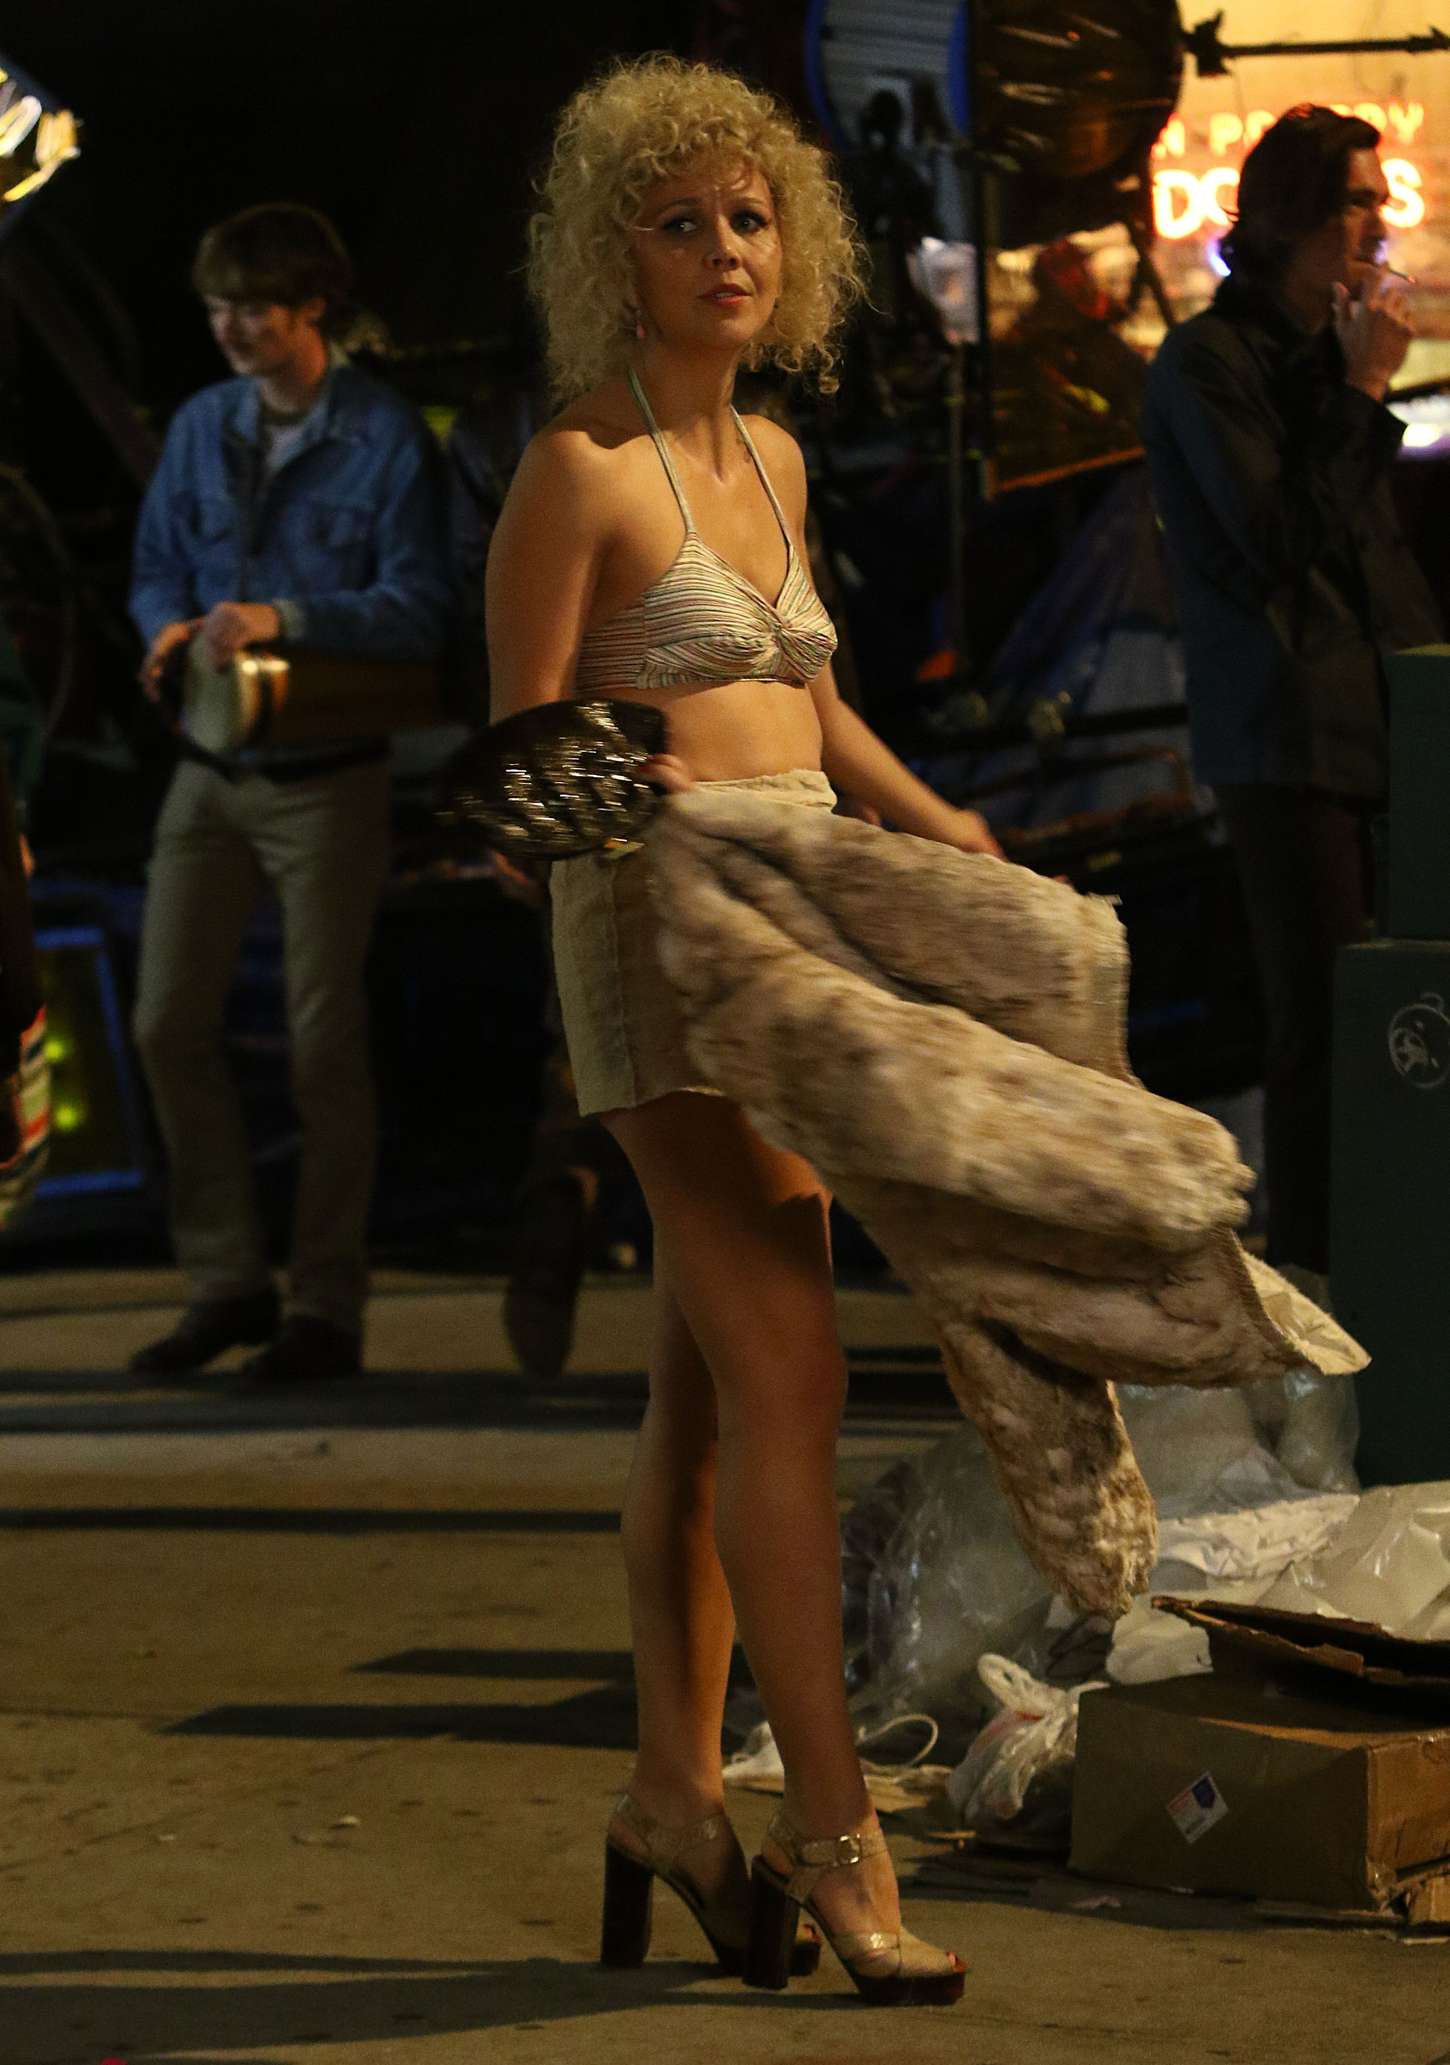 Maggie Gyllenhaal Filming The Deuce in New York